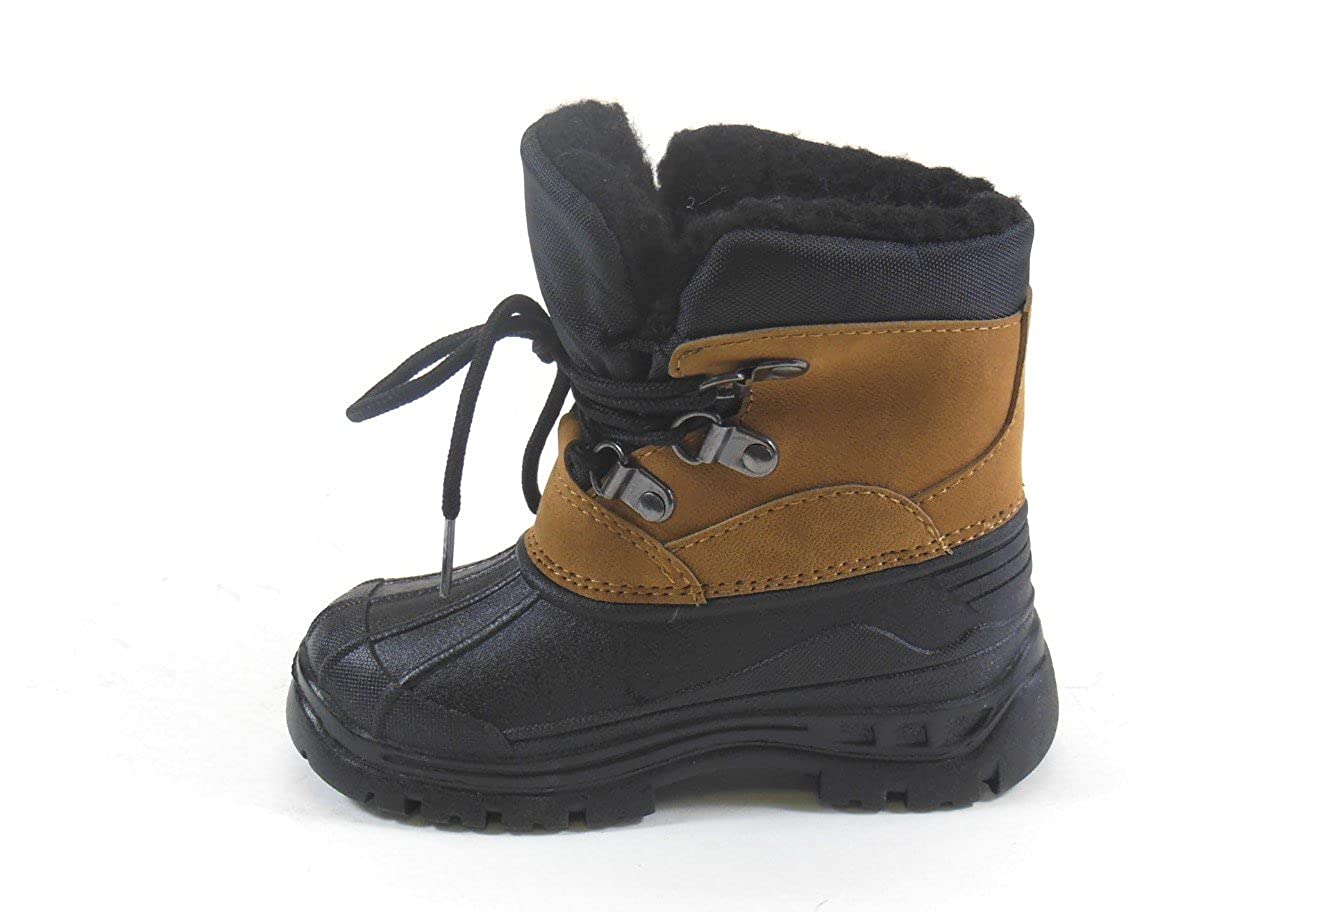 ADORABABY Toddler Boys Water Proof Winter Snow Boots